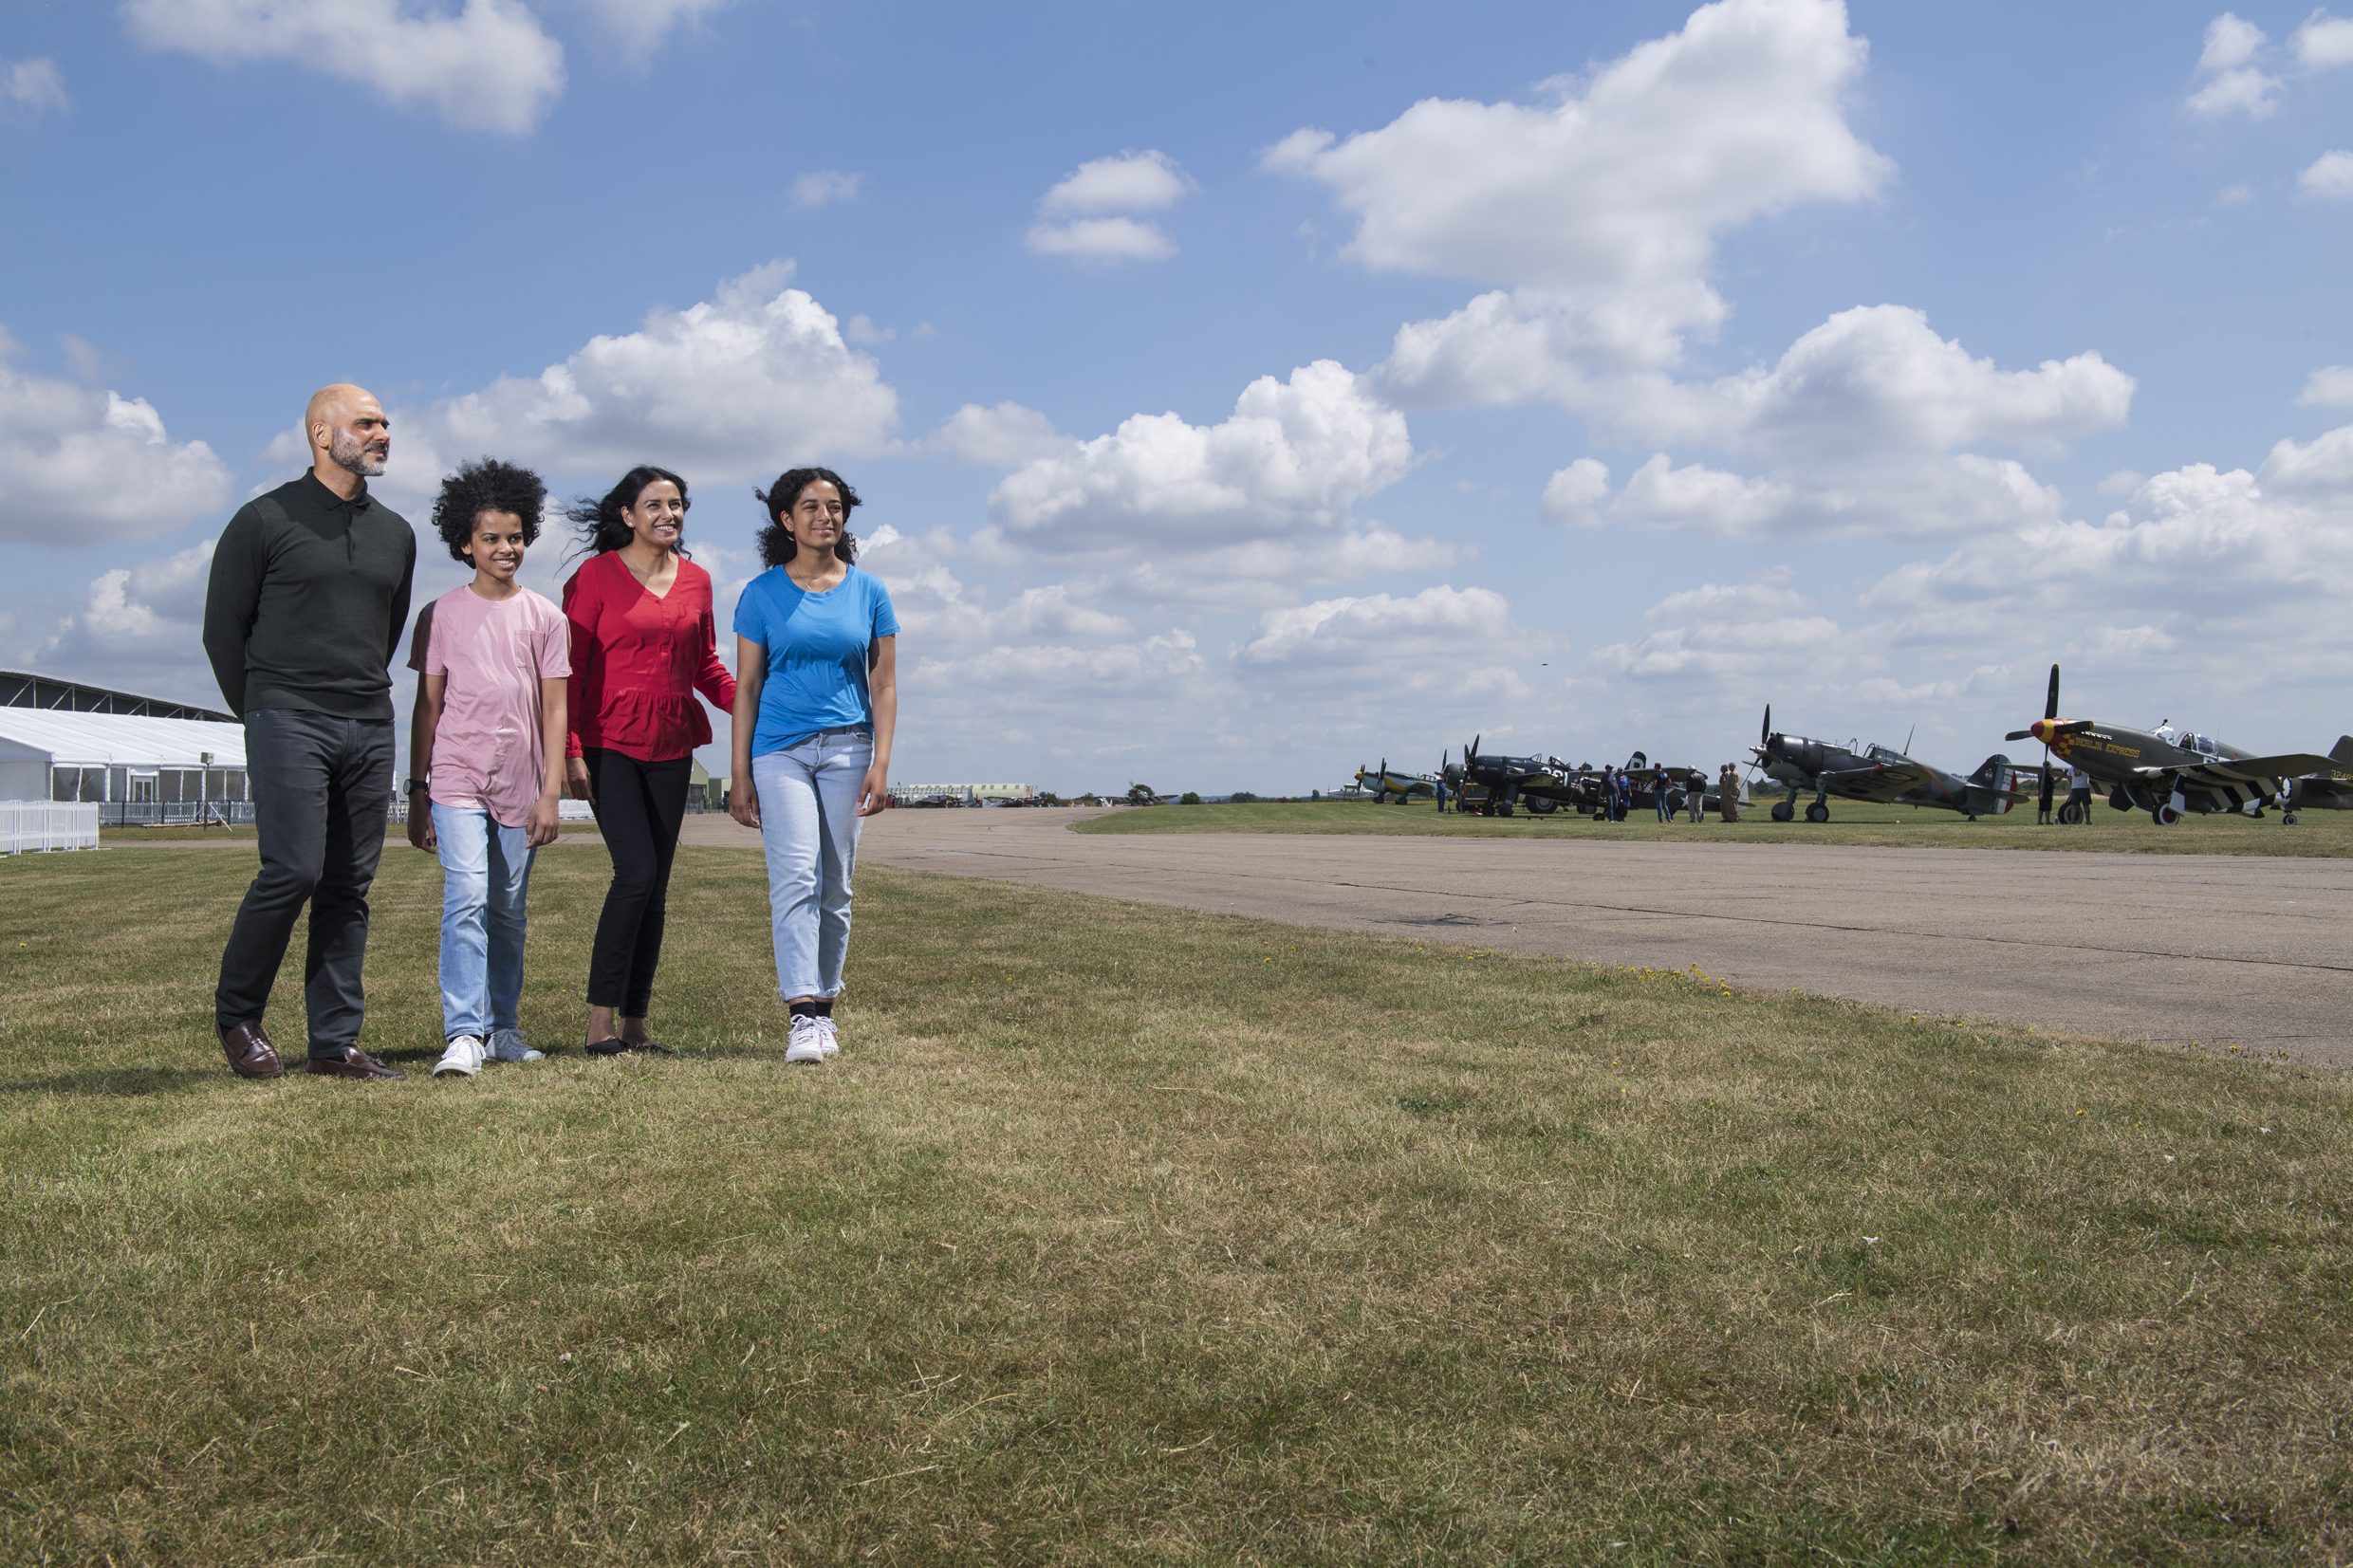 Family outside at IWM Duxford